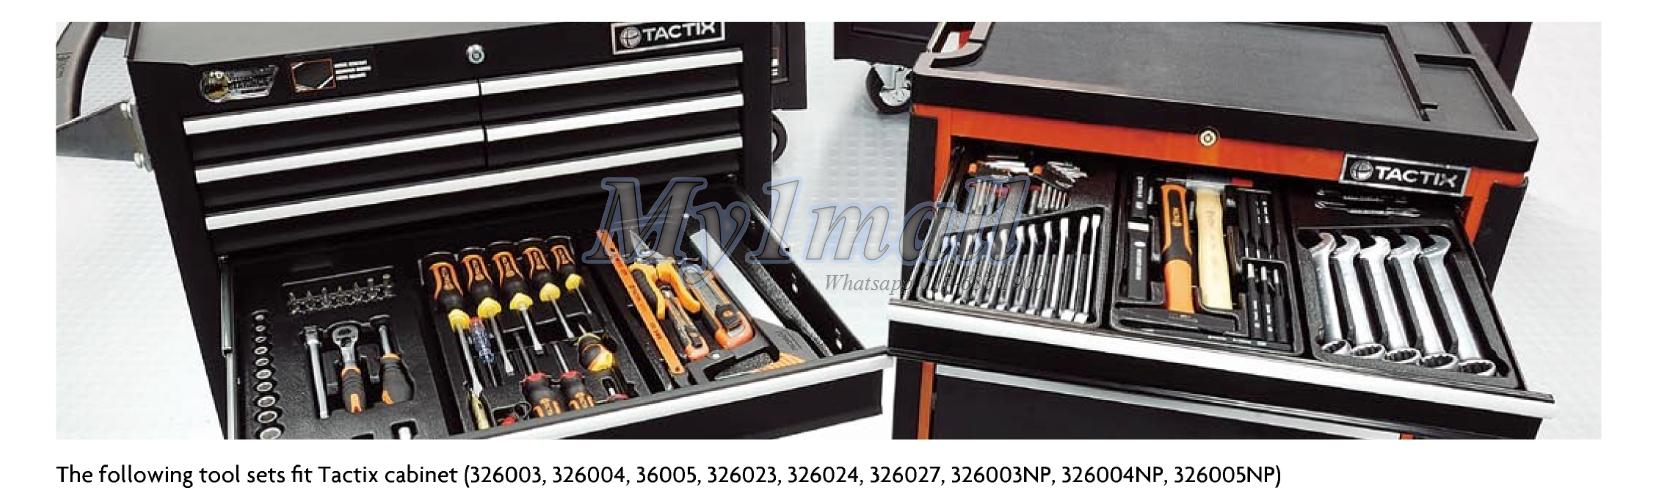 TACTIX 327504 11pcs File Tool Set